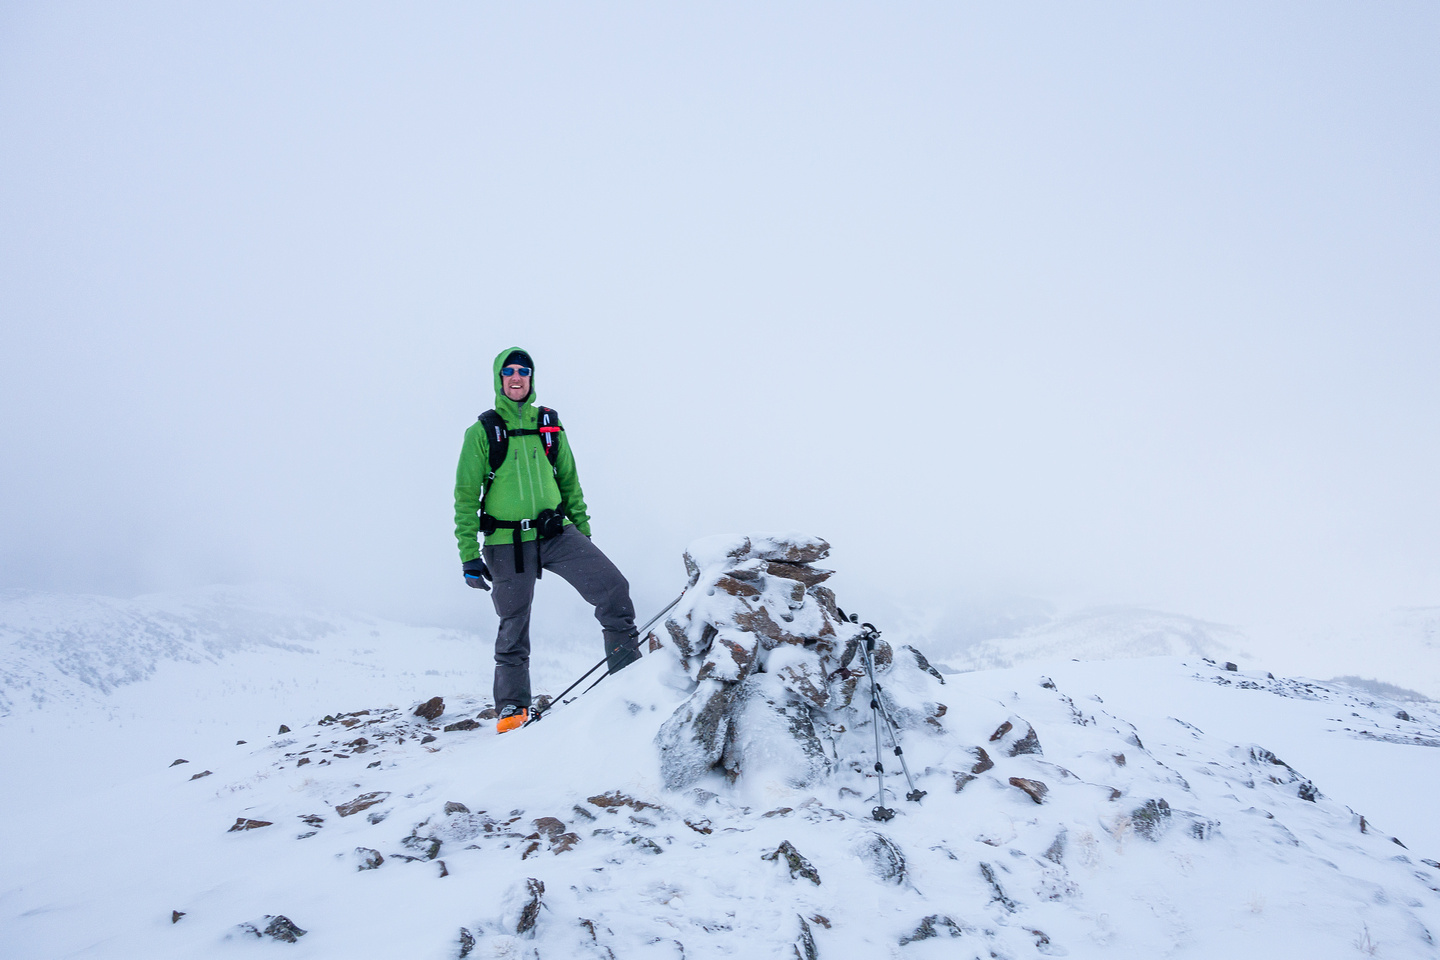 Vern on the summit of Healy Pass Peak - no register that we could find.